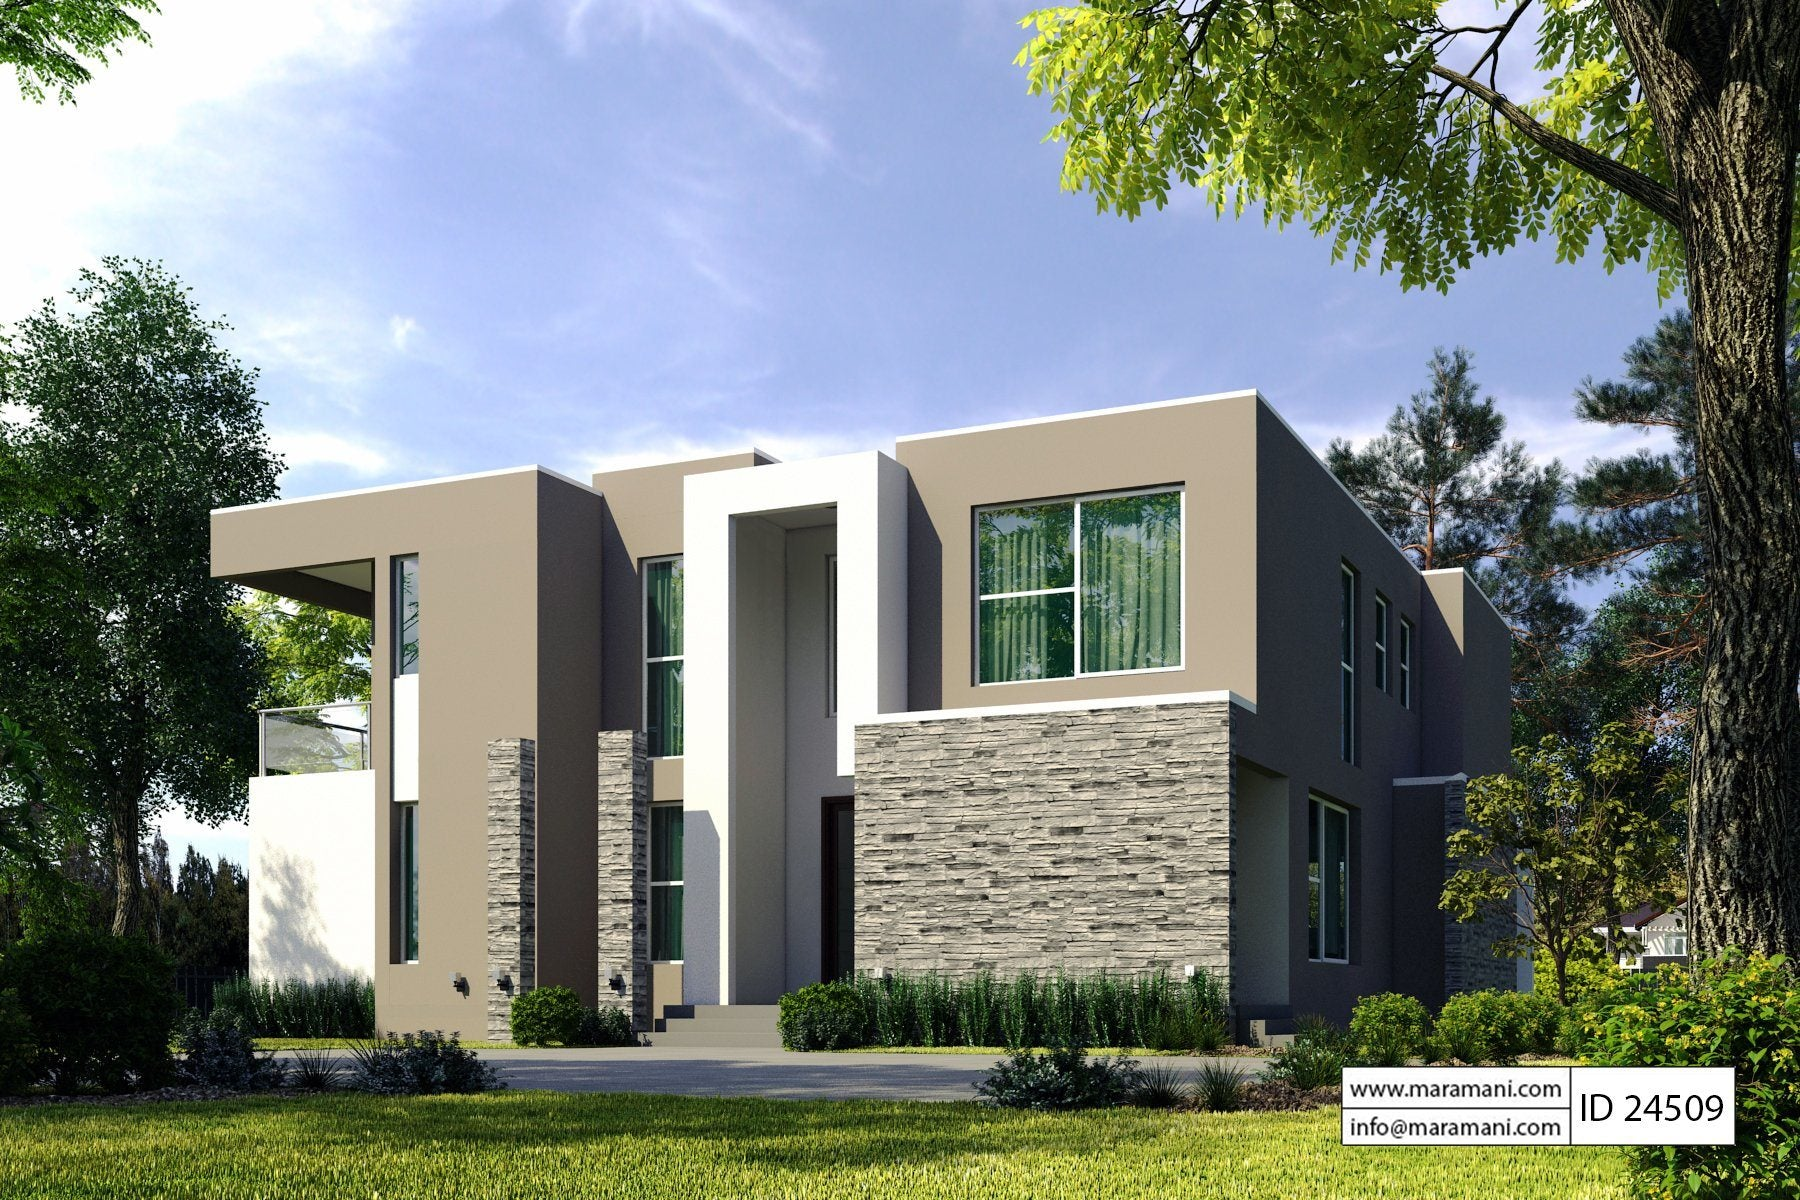 4 bedroom modern house plan id 24509 house plans by for 4 bedroom modern house plans